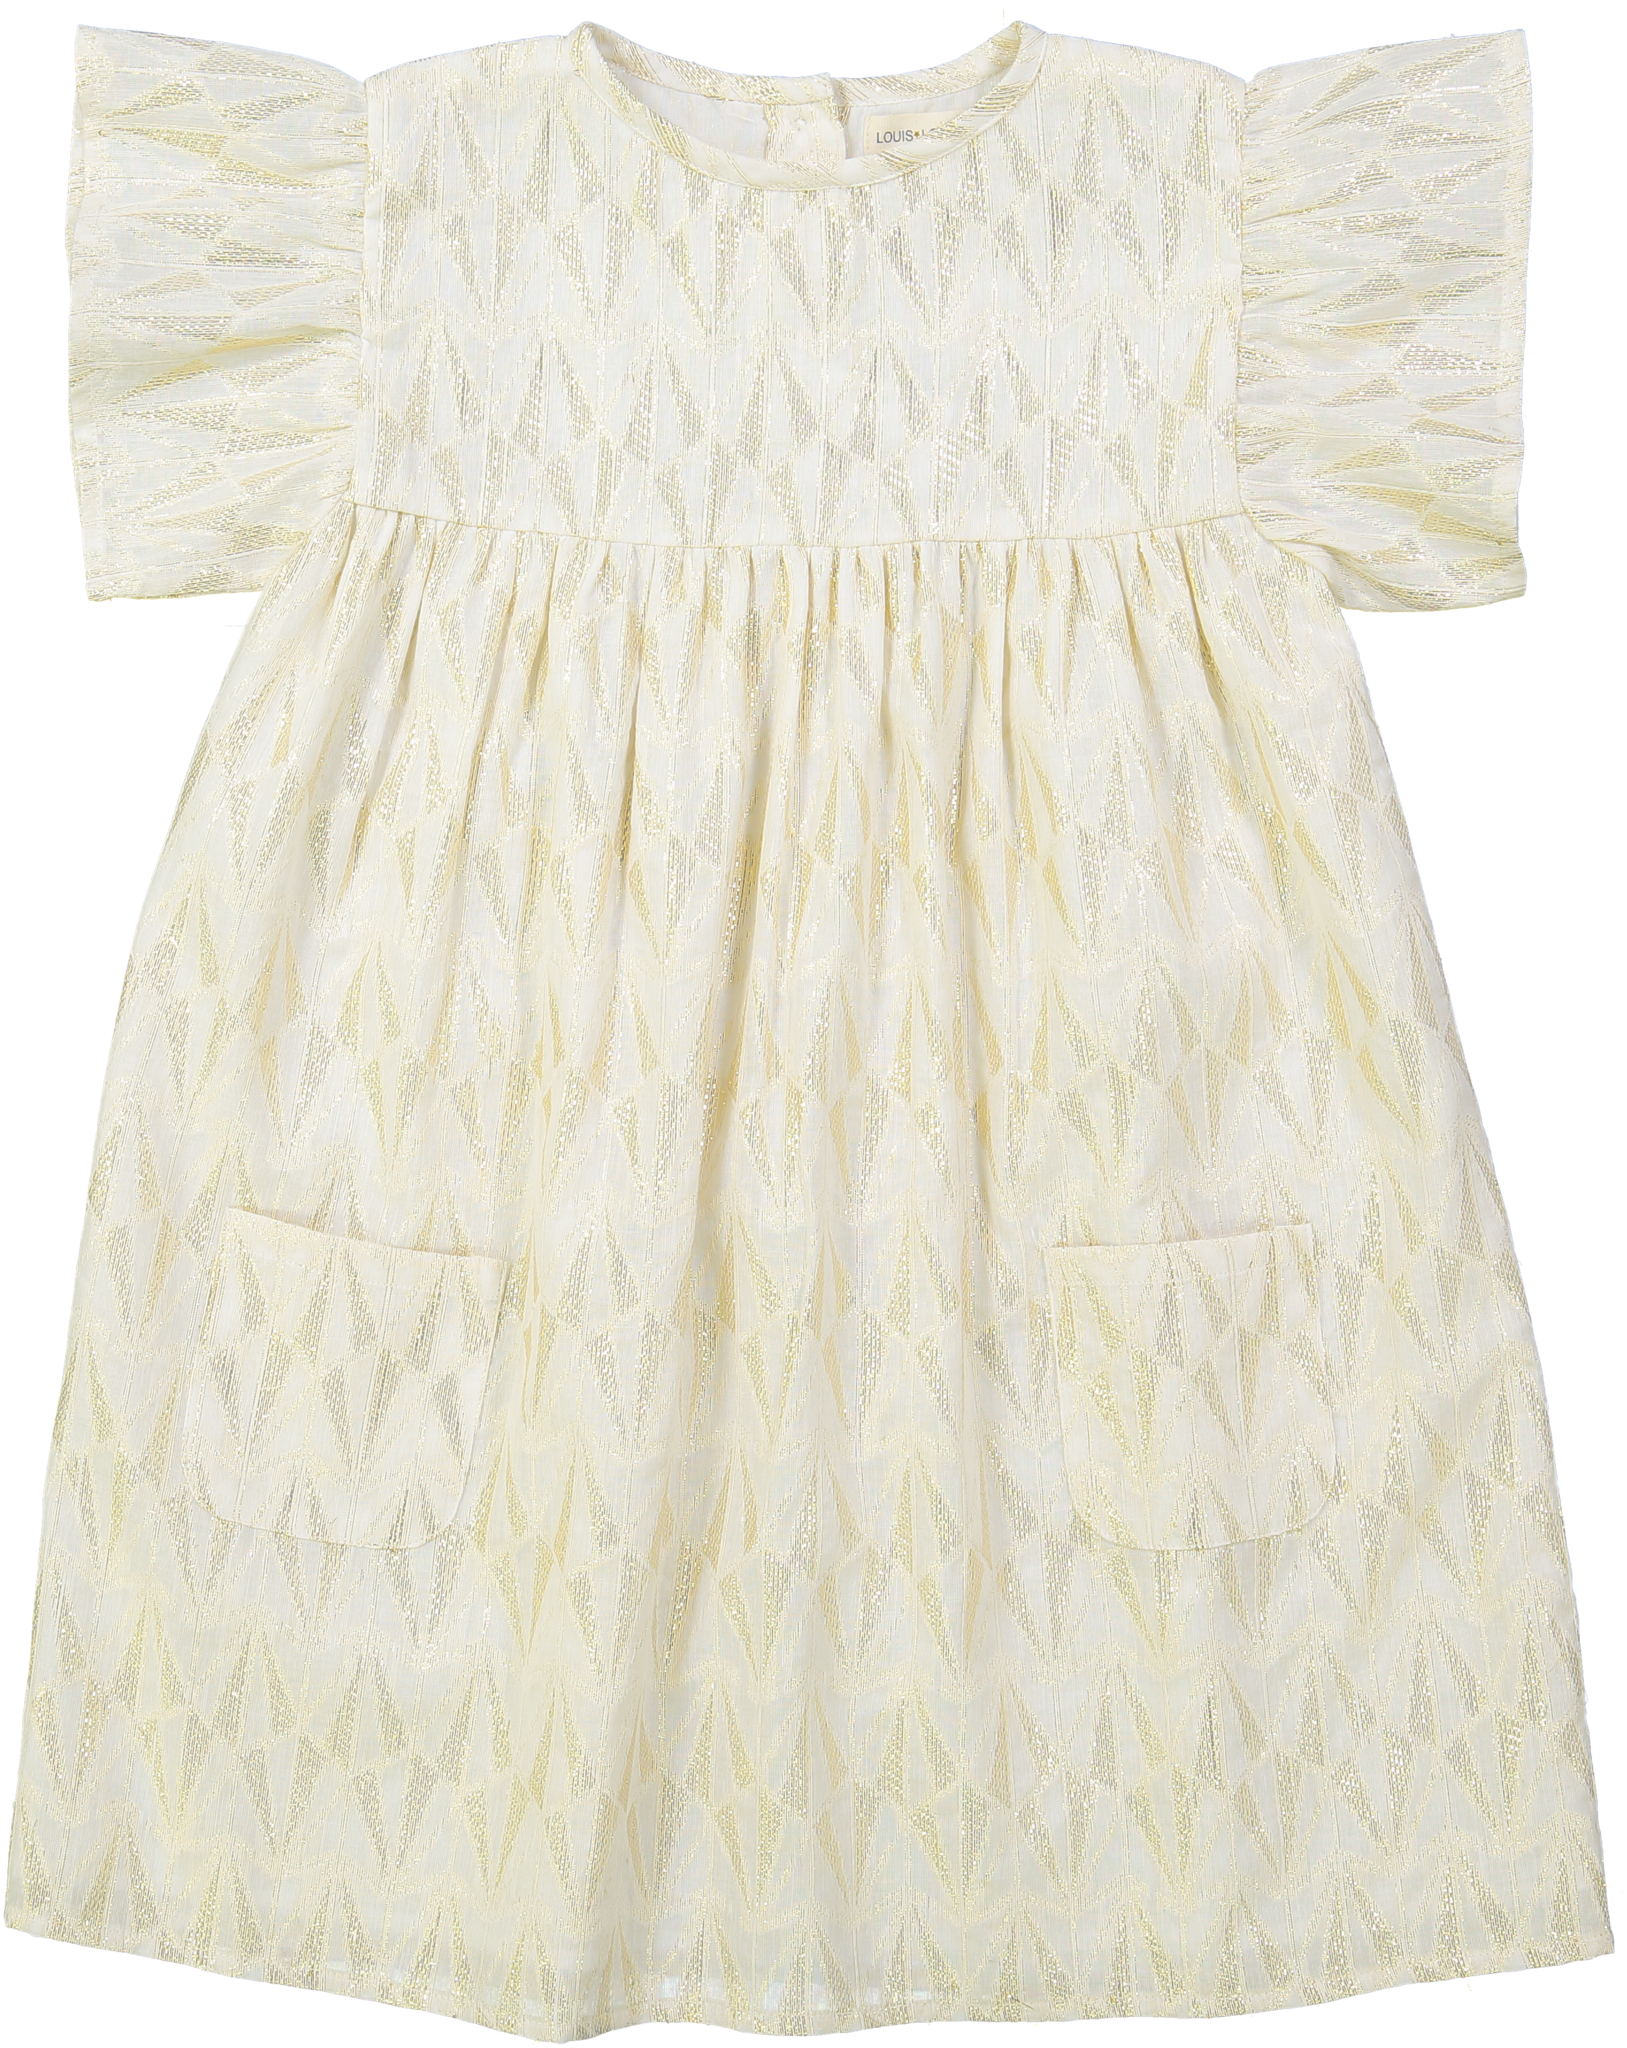 Ava Dress Gold Lurex Triangle Off White